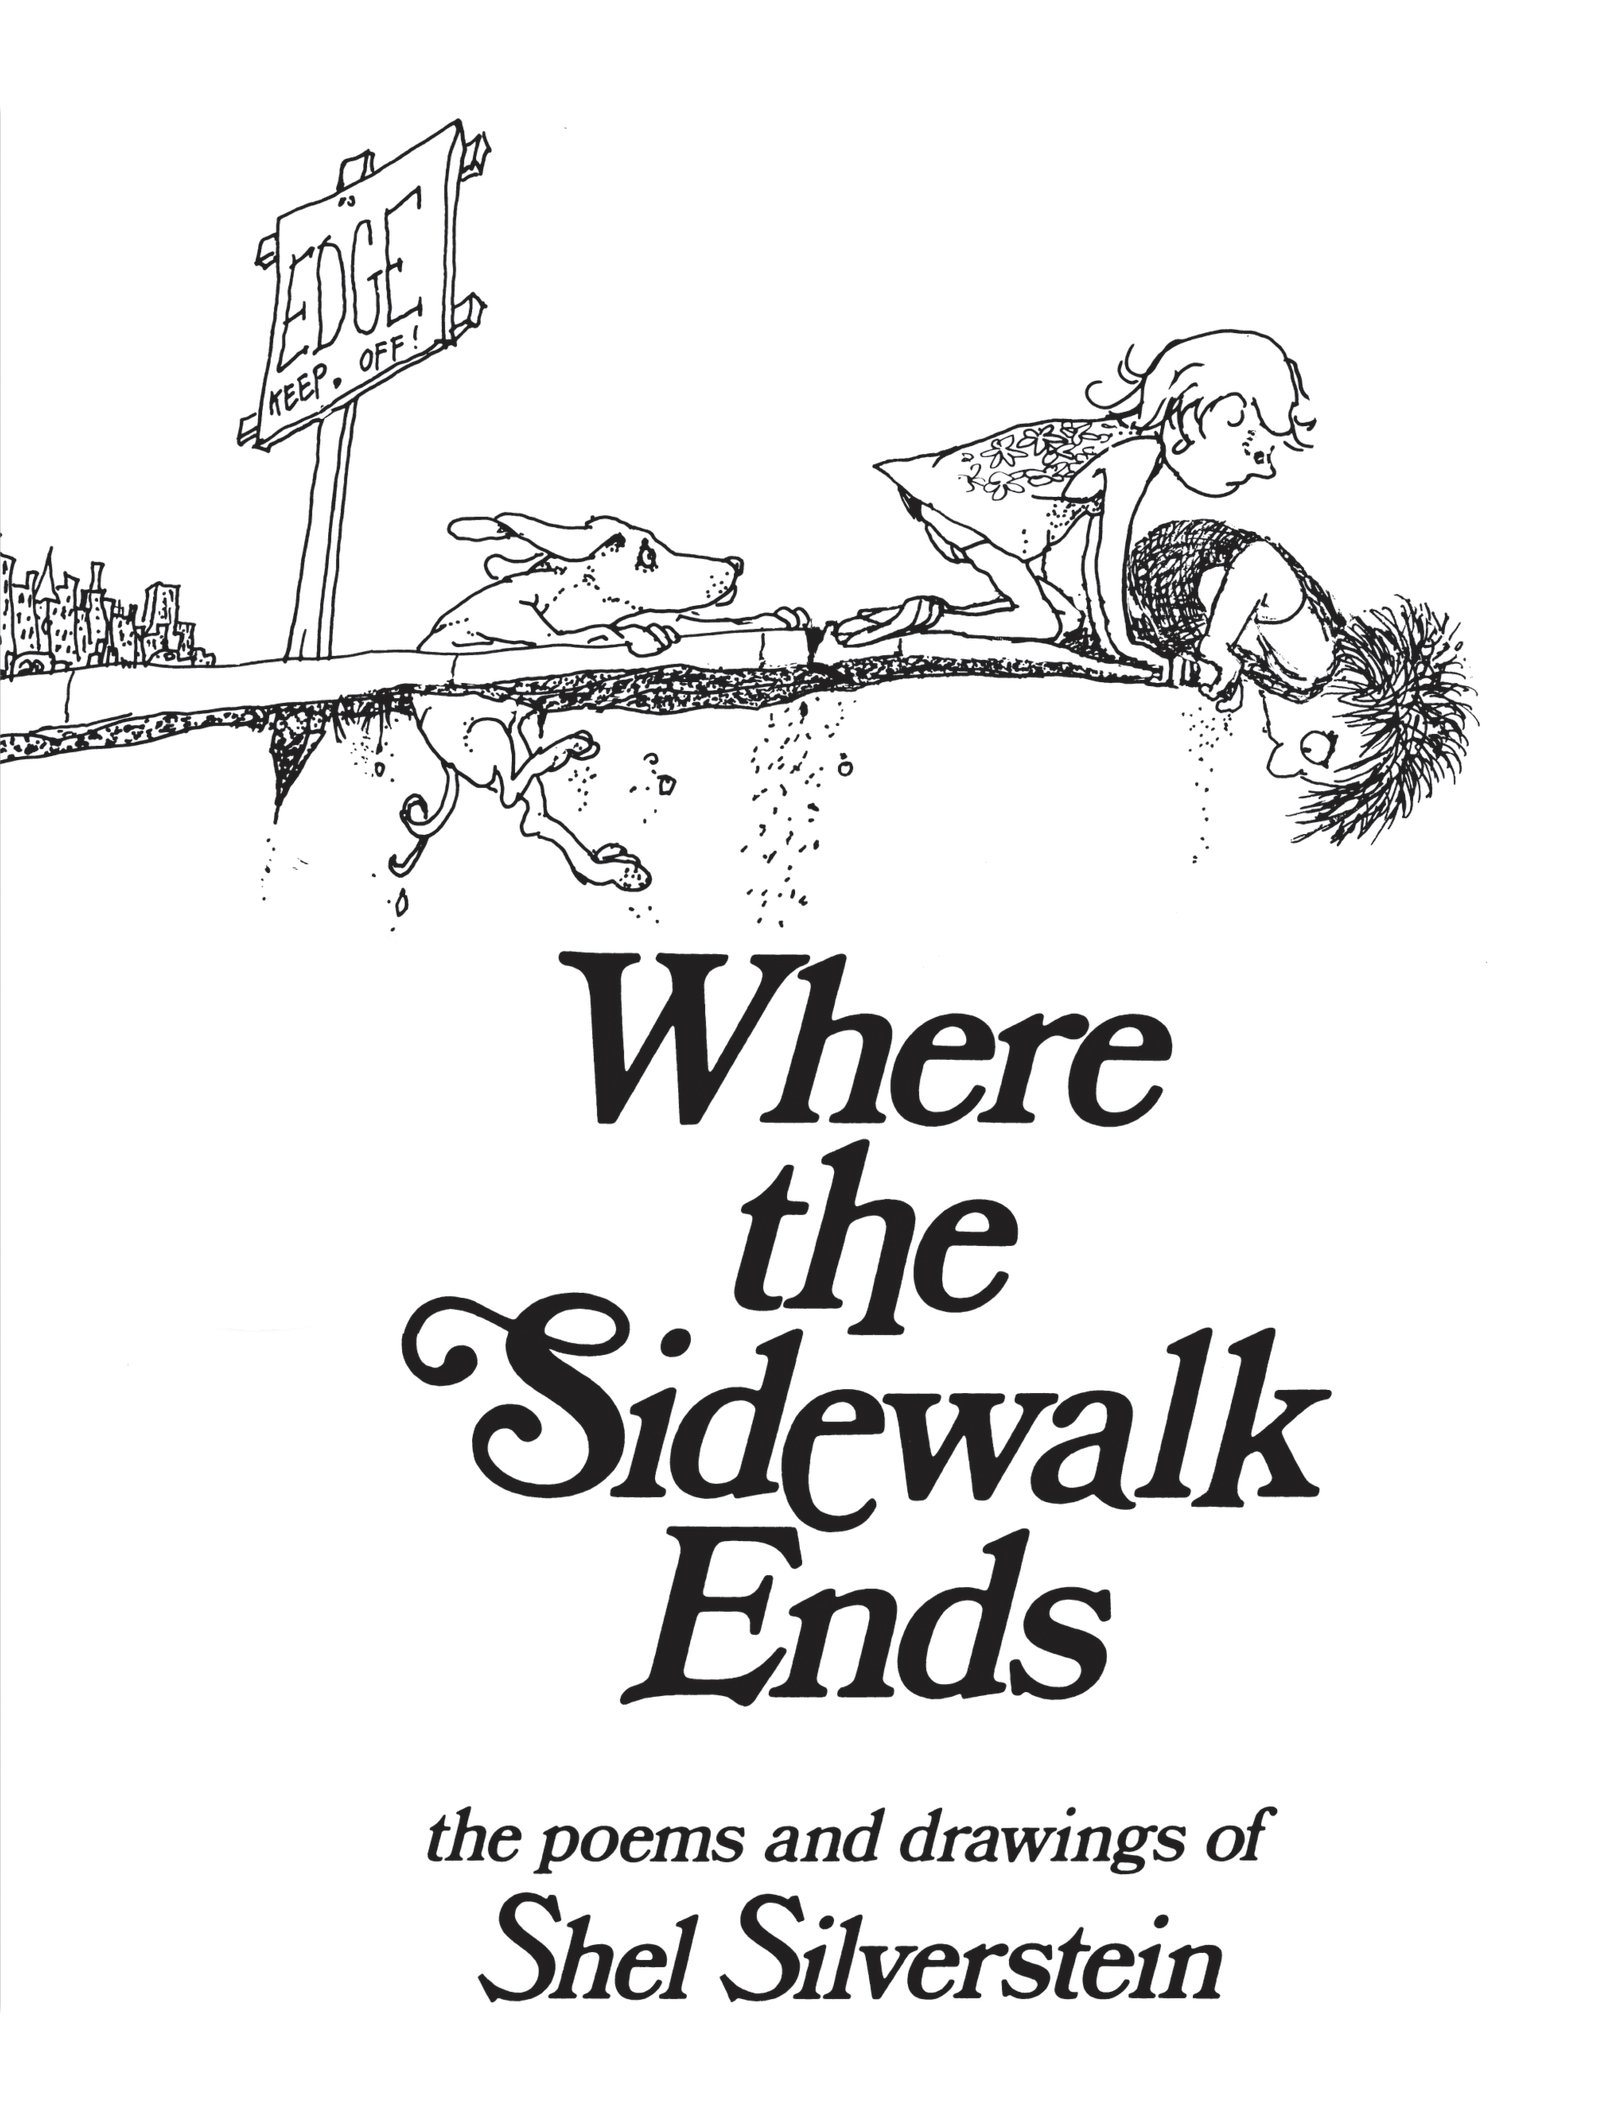 Where The Sidewalk Ends - My Favorite Kids' Books